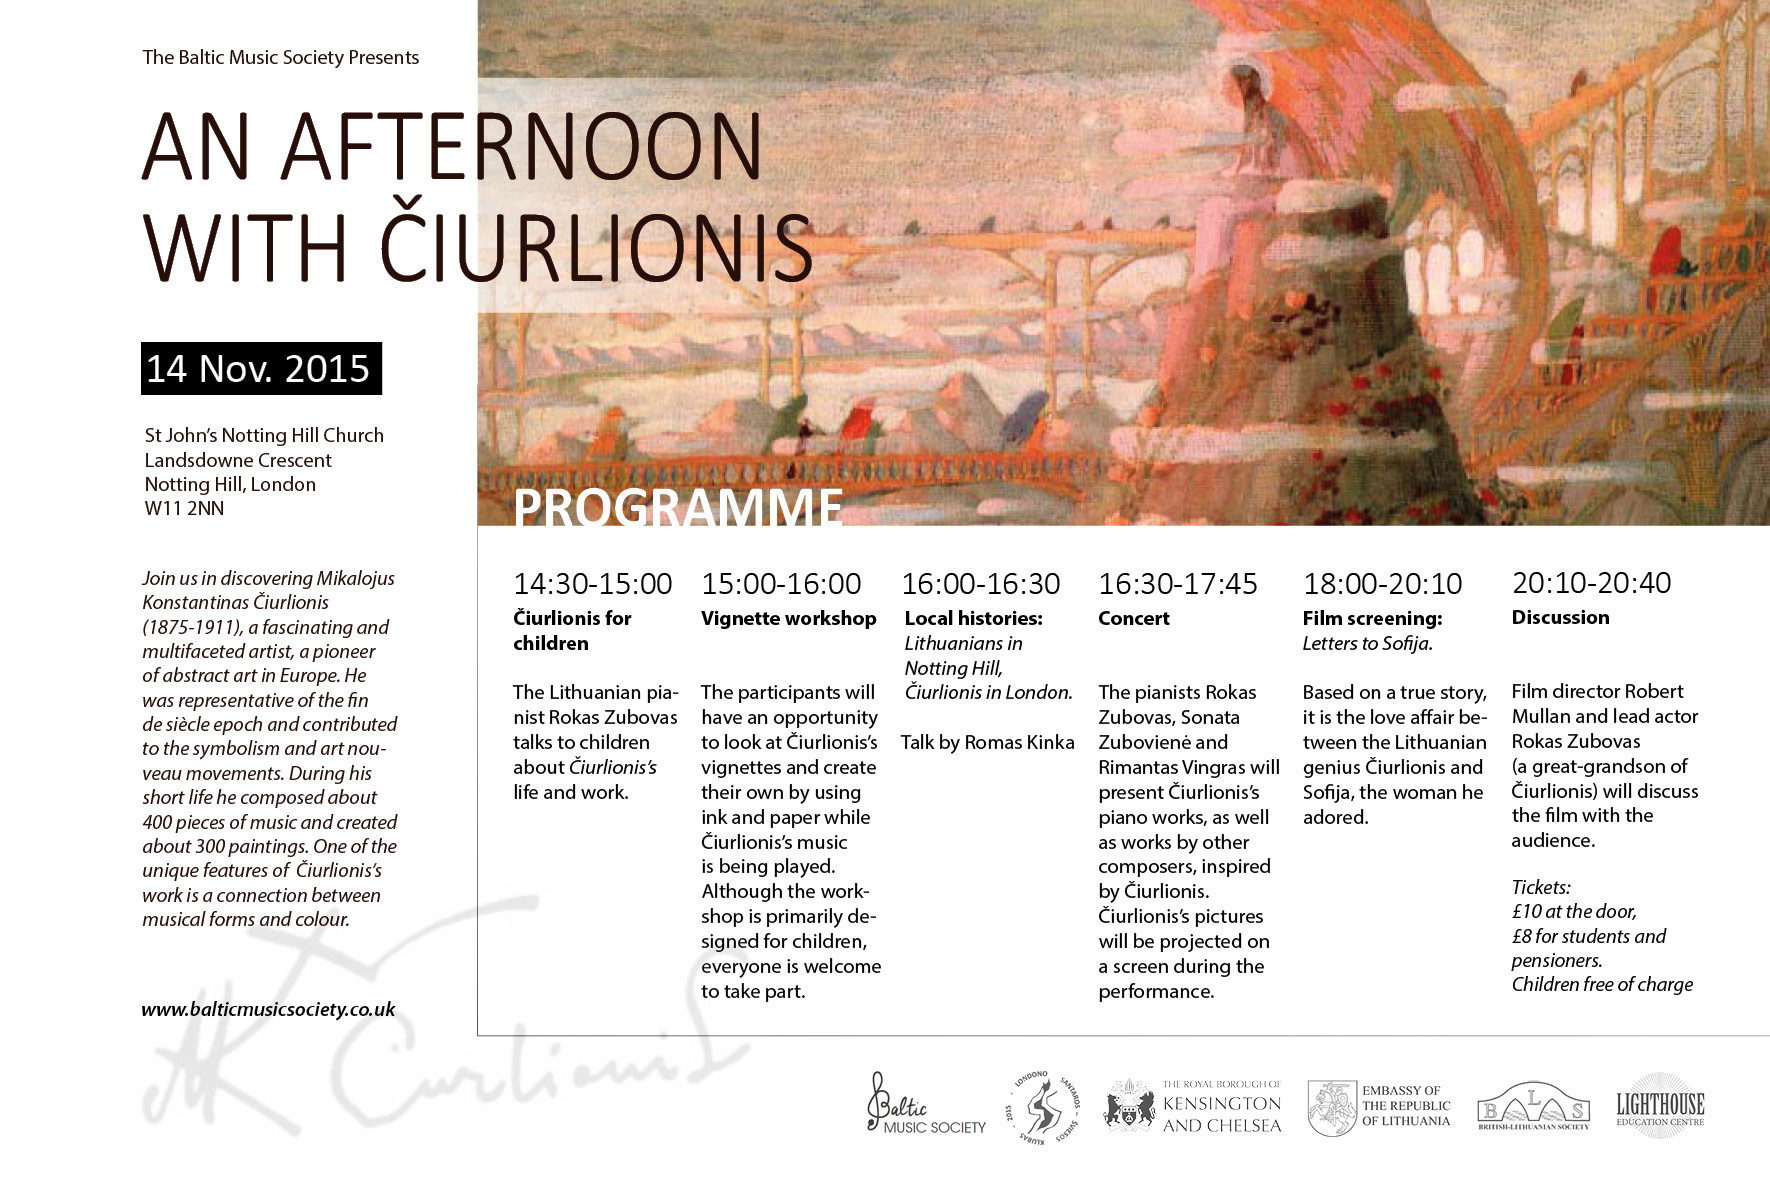 The Baltic Music Society is organizing  An Afternoon with Čiurlionis  which will take place on Saturday, 14 November 2015 at St John's.